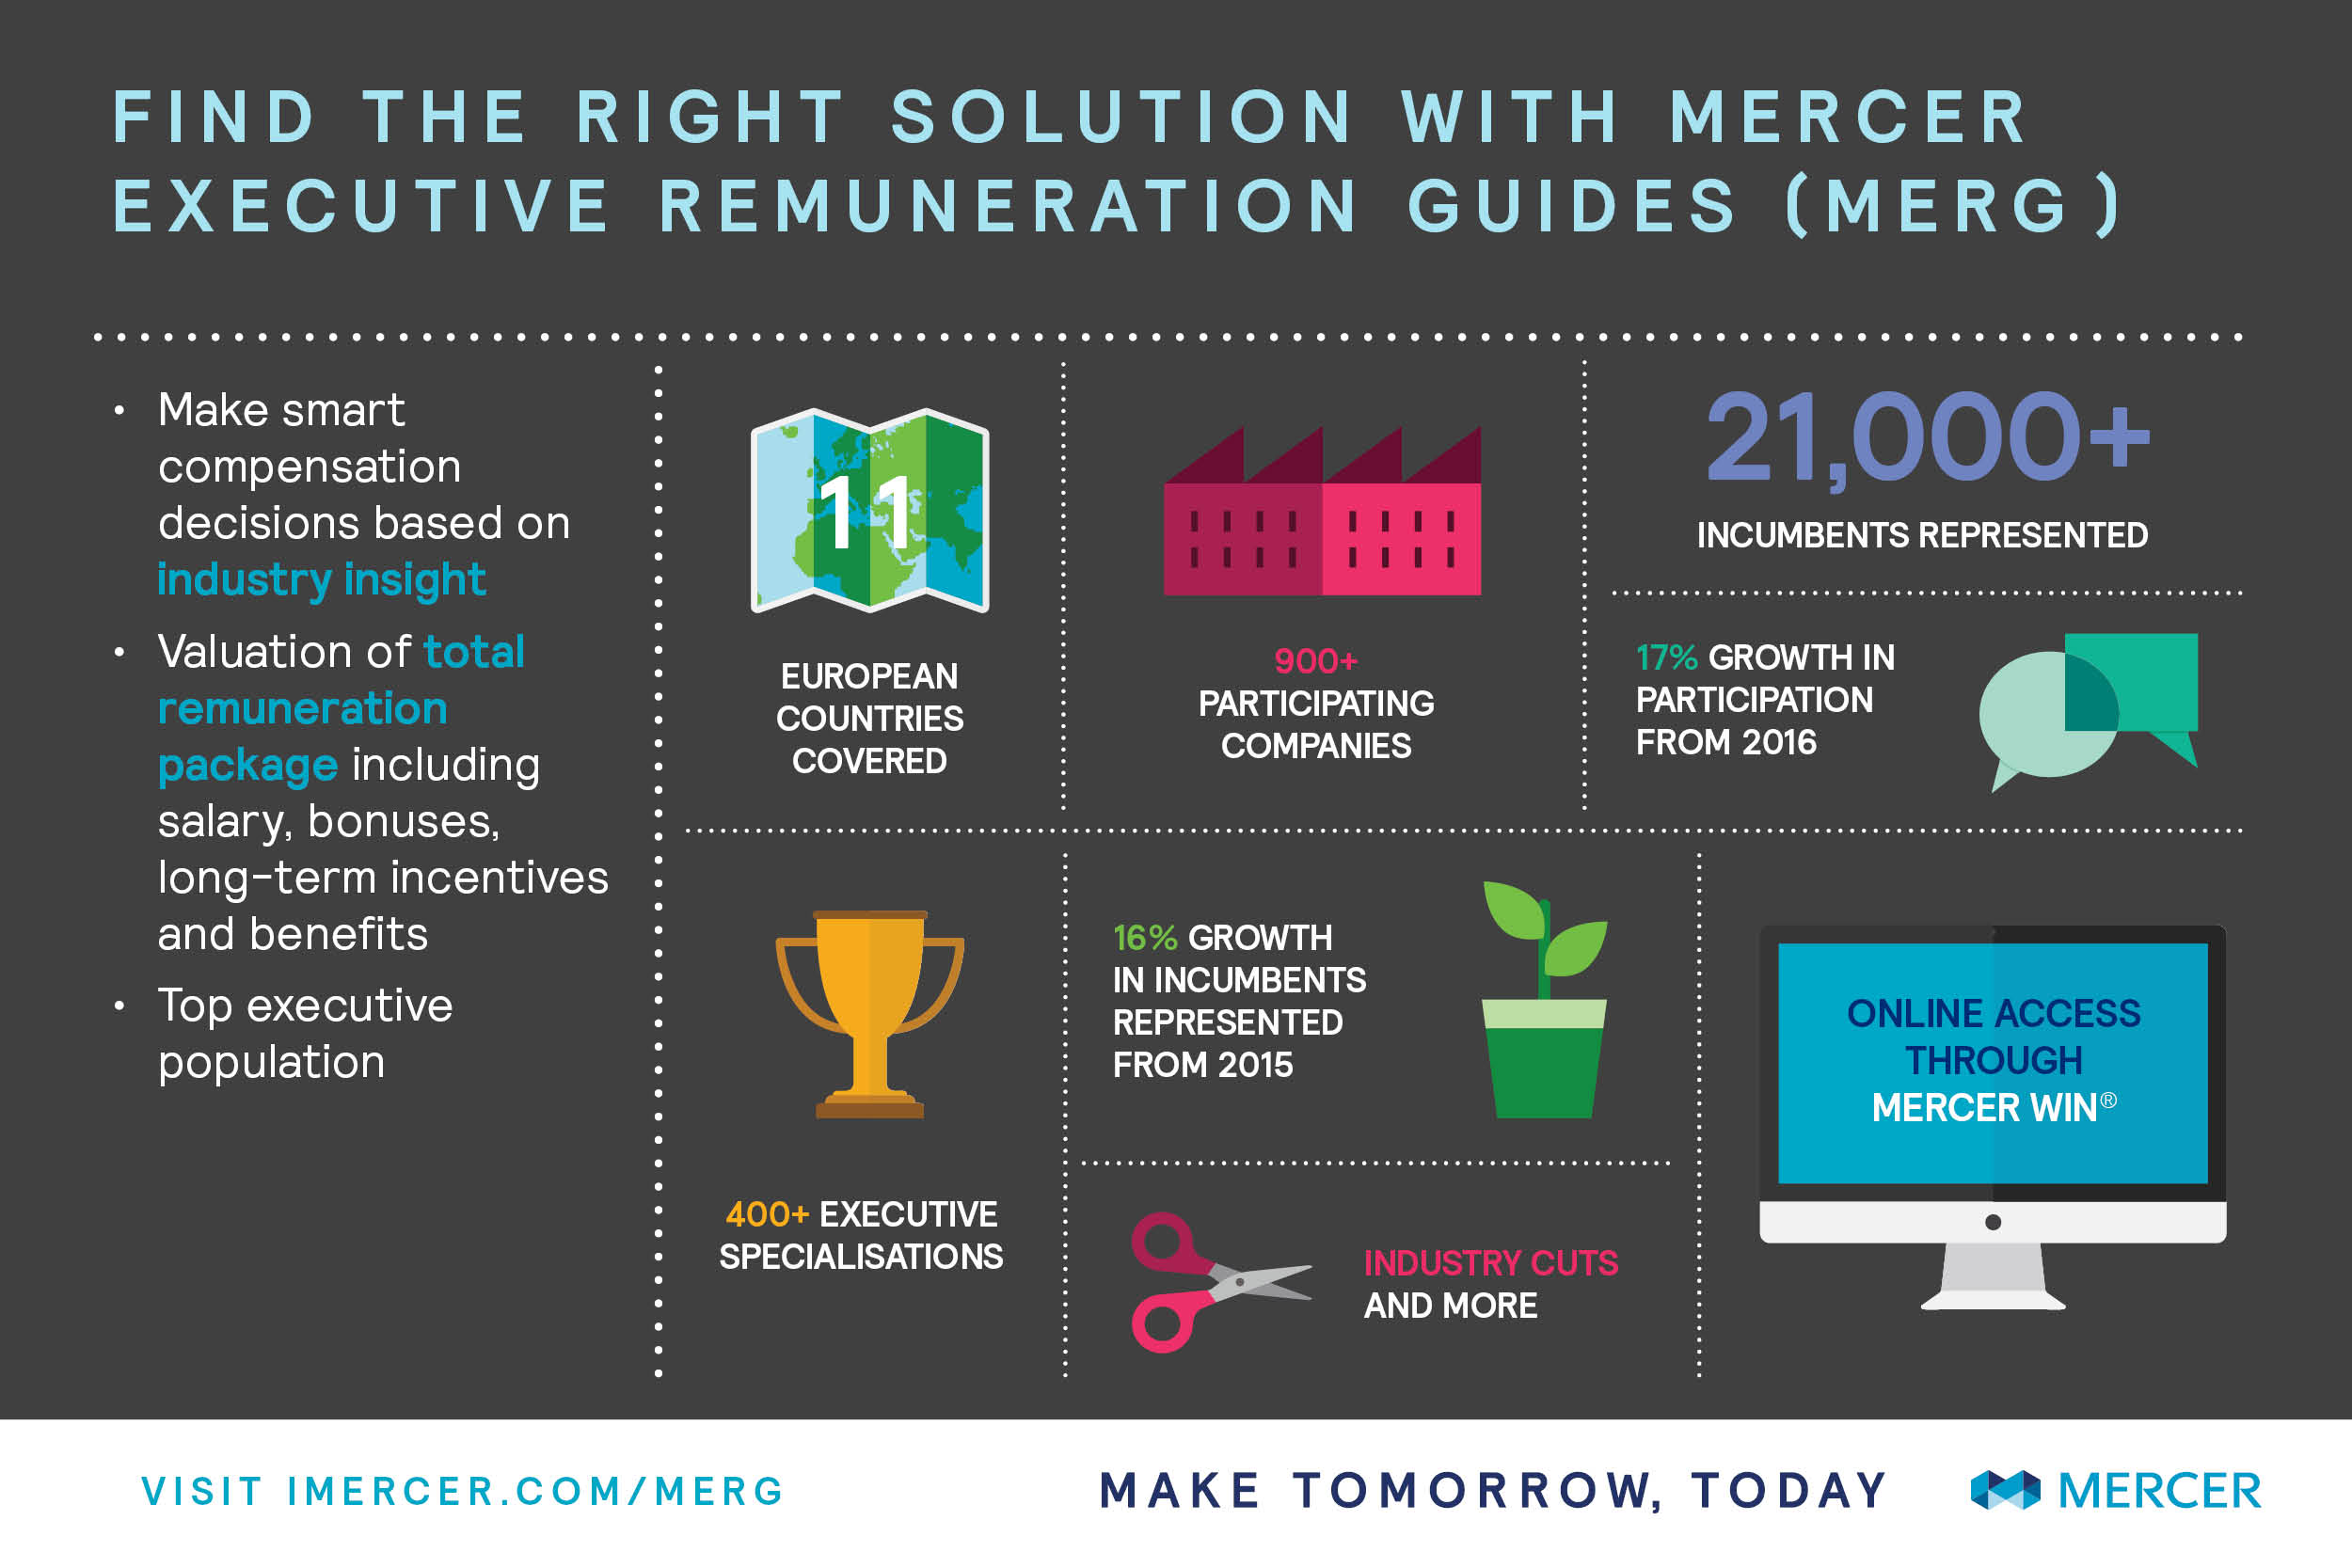 Mercer Executive Salaries and Remuneration Guides infographic